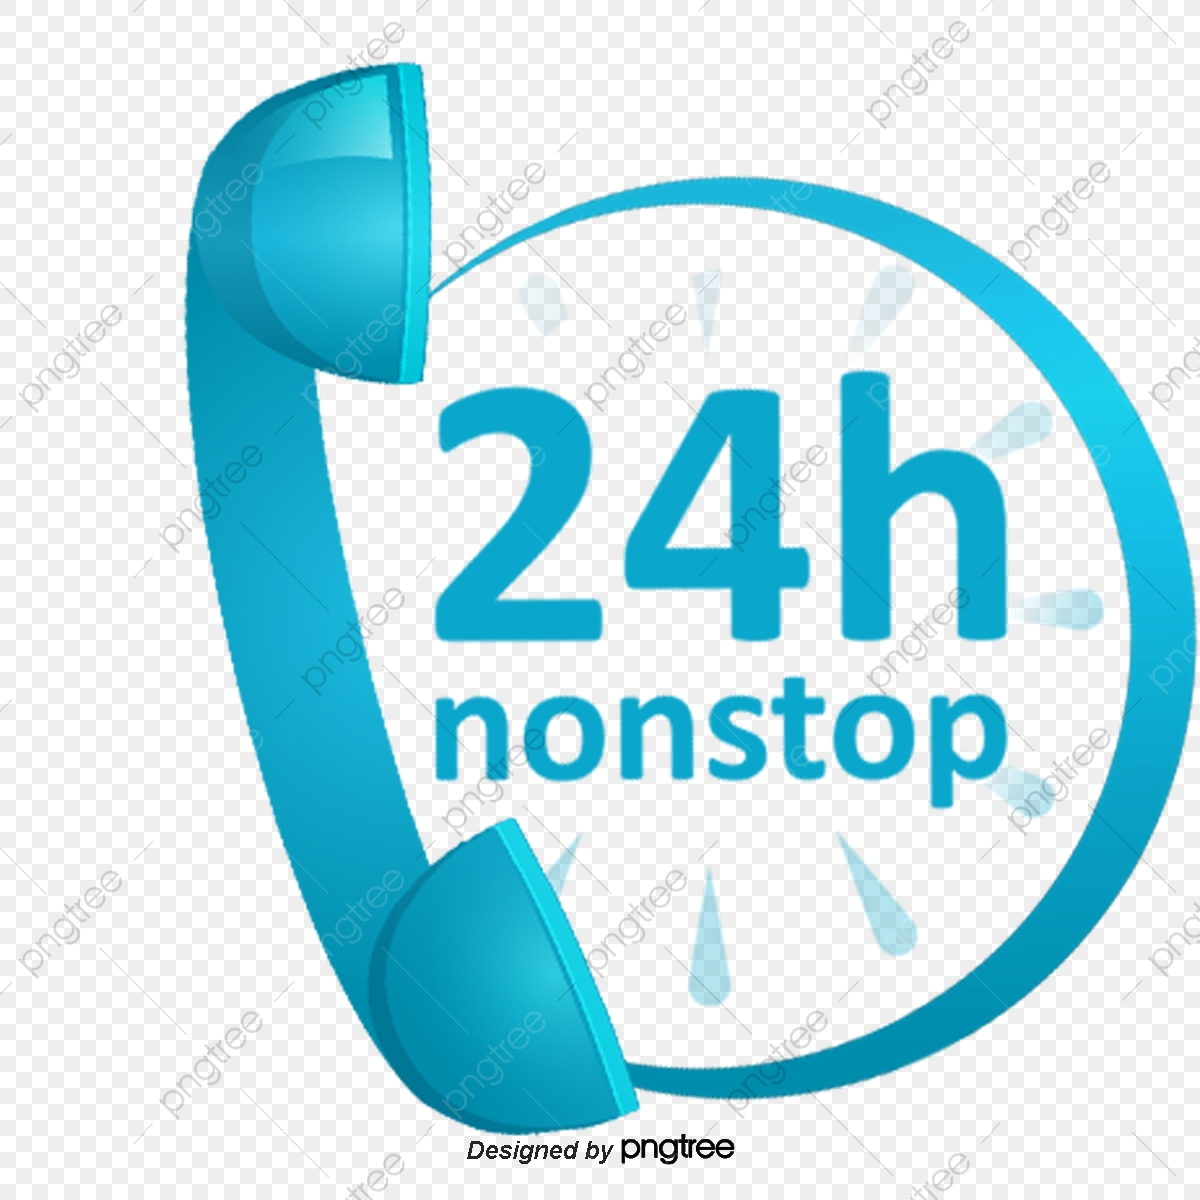 24 hours png images vector and psd files free download on pngtree https pngtree com freepng creative 24 hour call 3125457 html